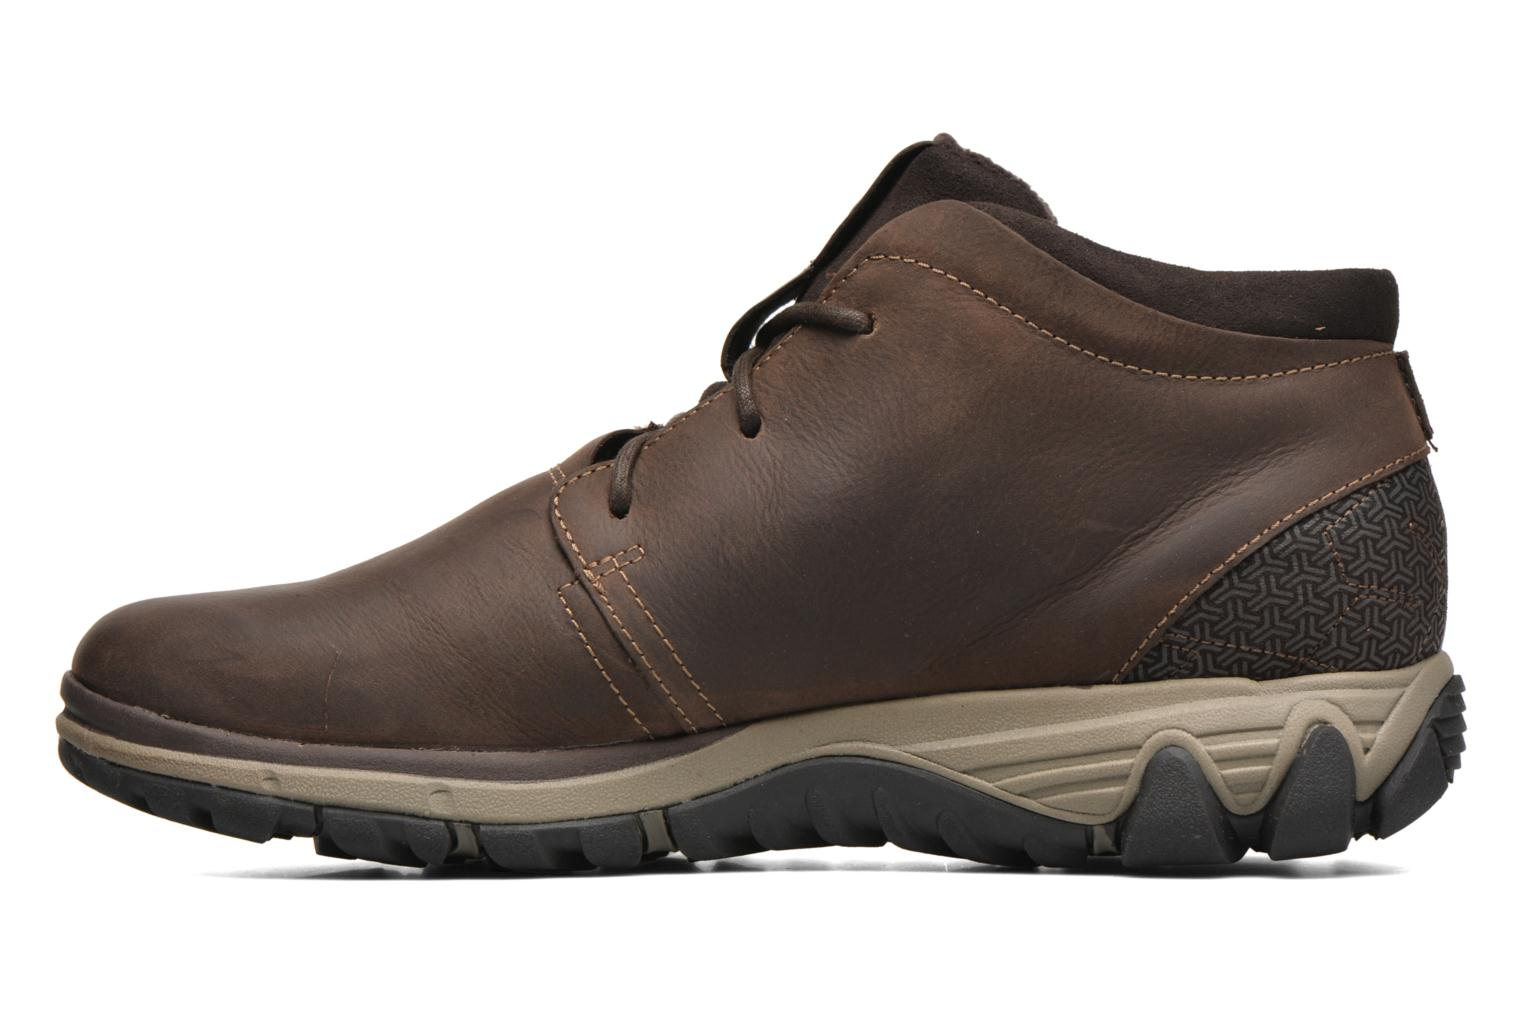 Chaussures à lacets Merrell All Out Blazer Chukka North Marron vue face